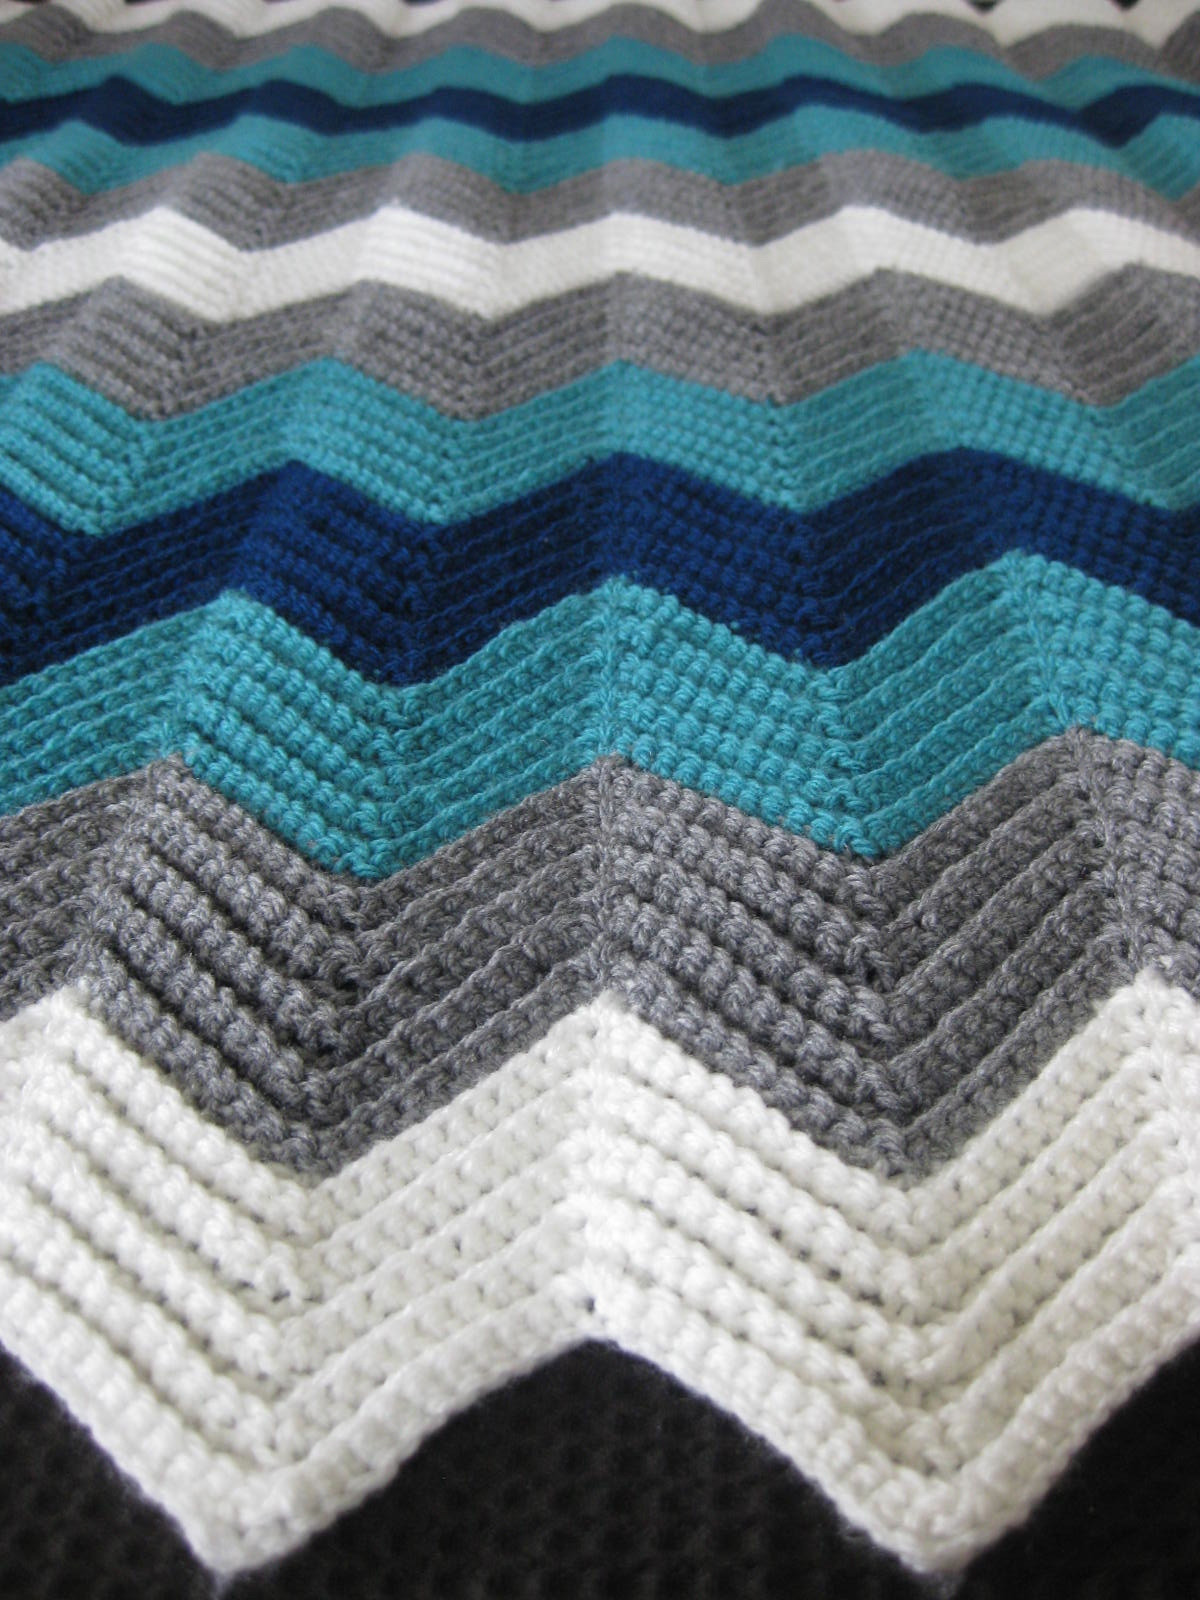 Single Crochet Patterns Inspirational Chevron Afghan 1 Of Single Crochet Patterns New Easy Diy Crochet Hats 2 Ways